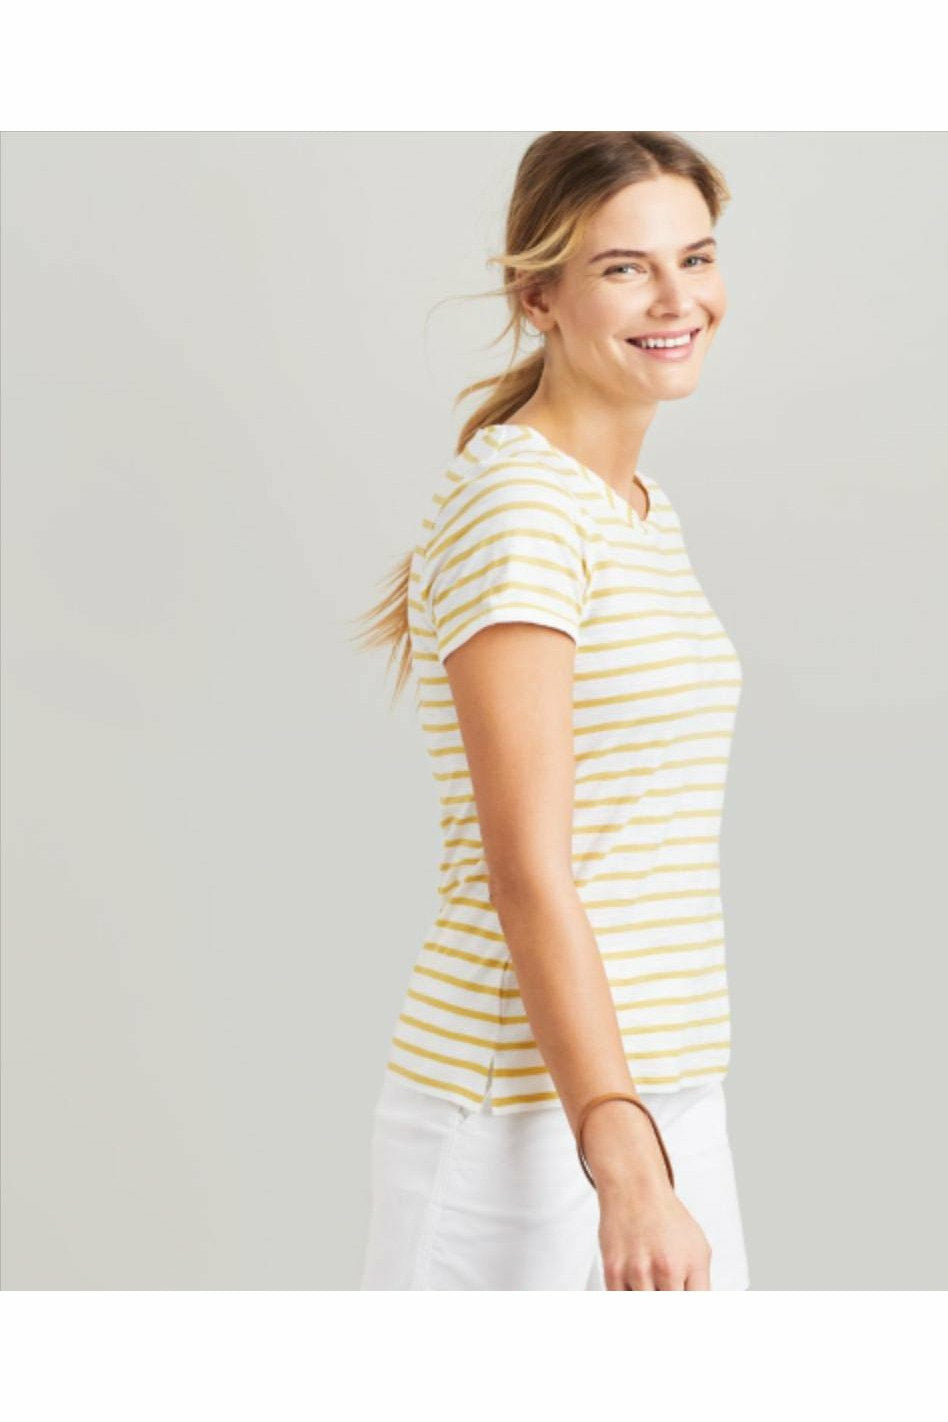 Joules Top - Nessa Stripe Lightweight Jersey T-shirt White/Lemon Stripe